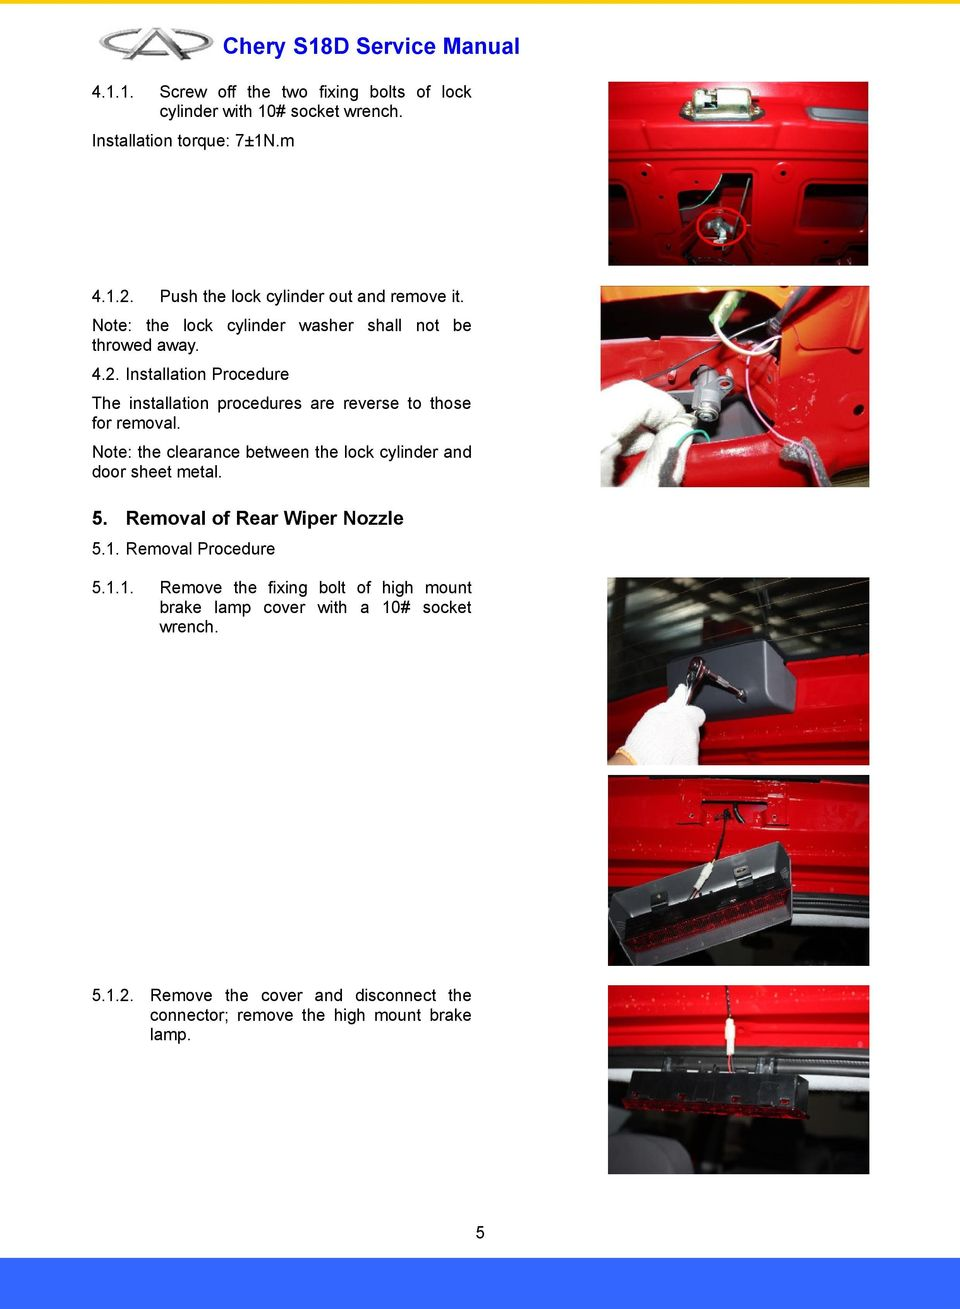 Nissan Rogue Service Manual: Wiper and washer system symptoms